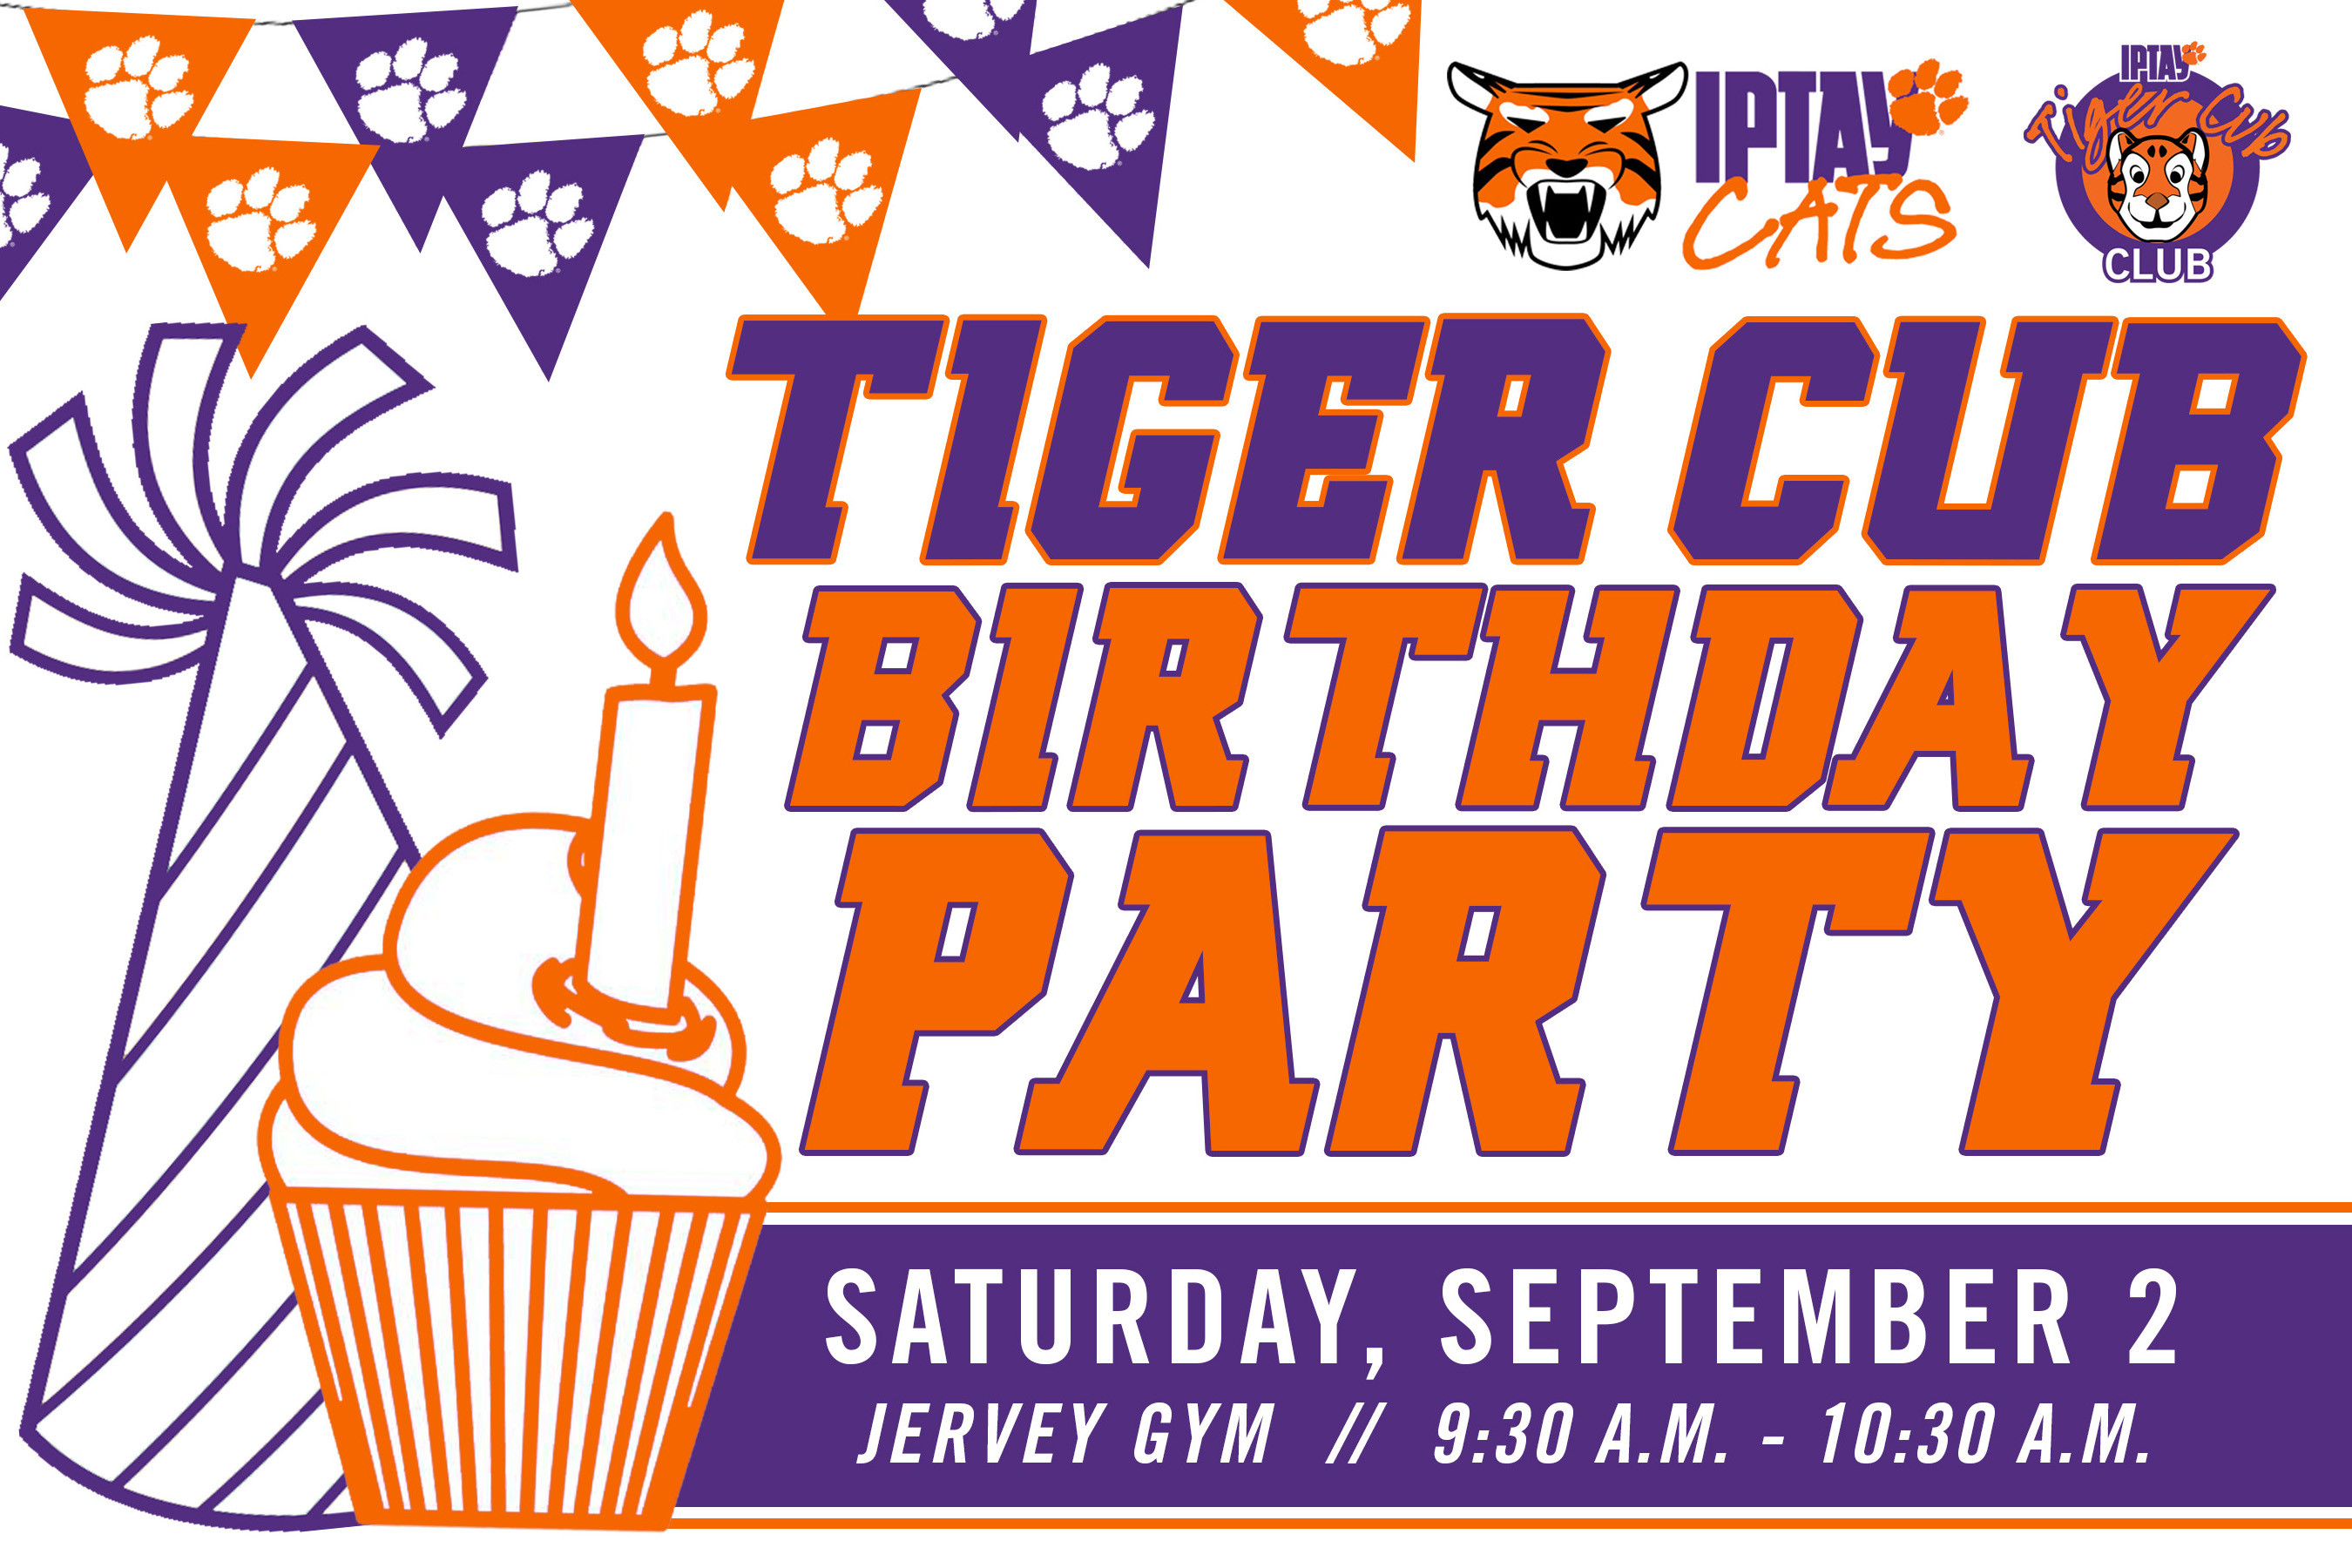 It's Time To Party! The Tiger Cub's Birthday Party Is Set For Saturday, September 2